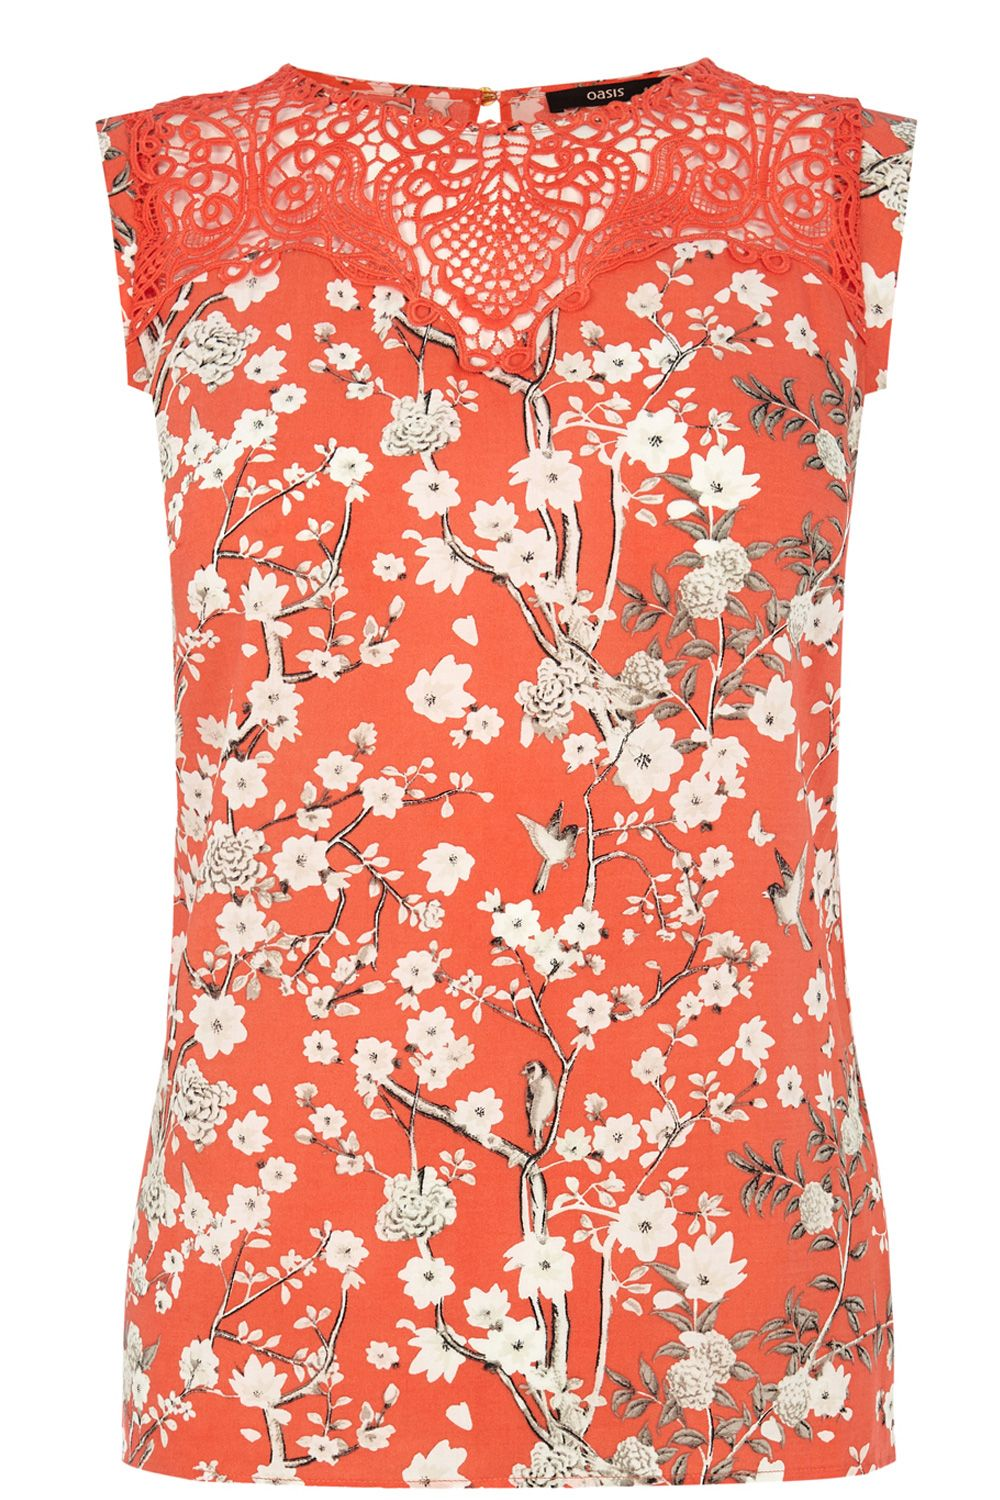 Japanese Blossom Top